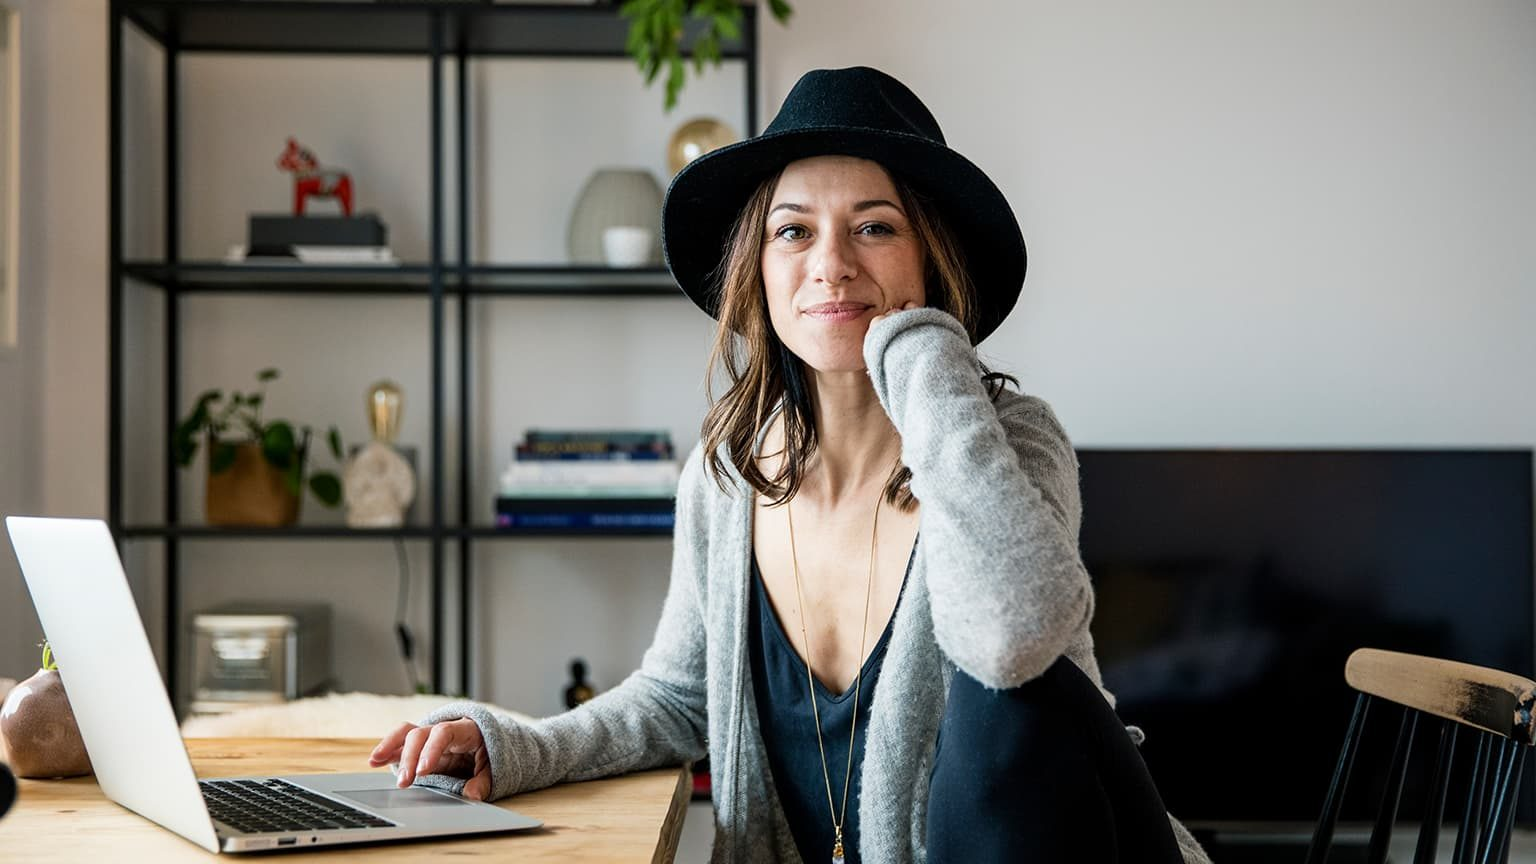 Women with hat smiling while sitting at a desk with a laptop